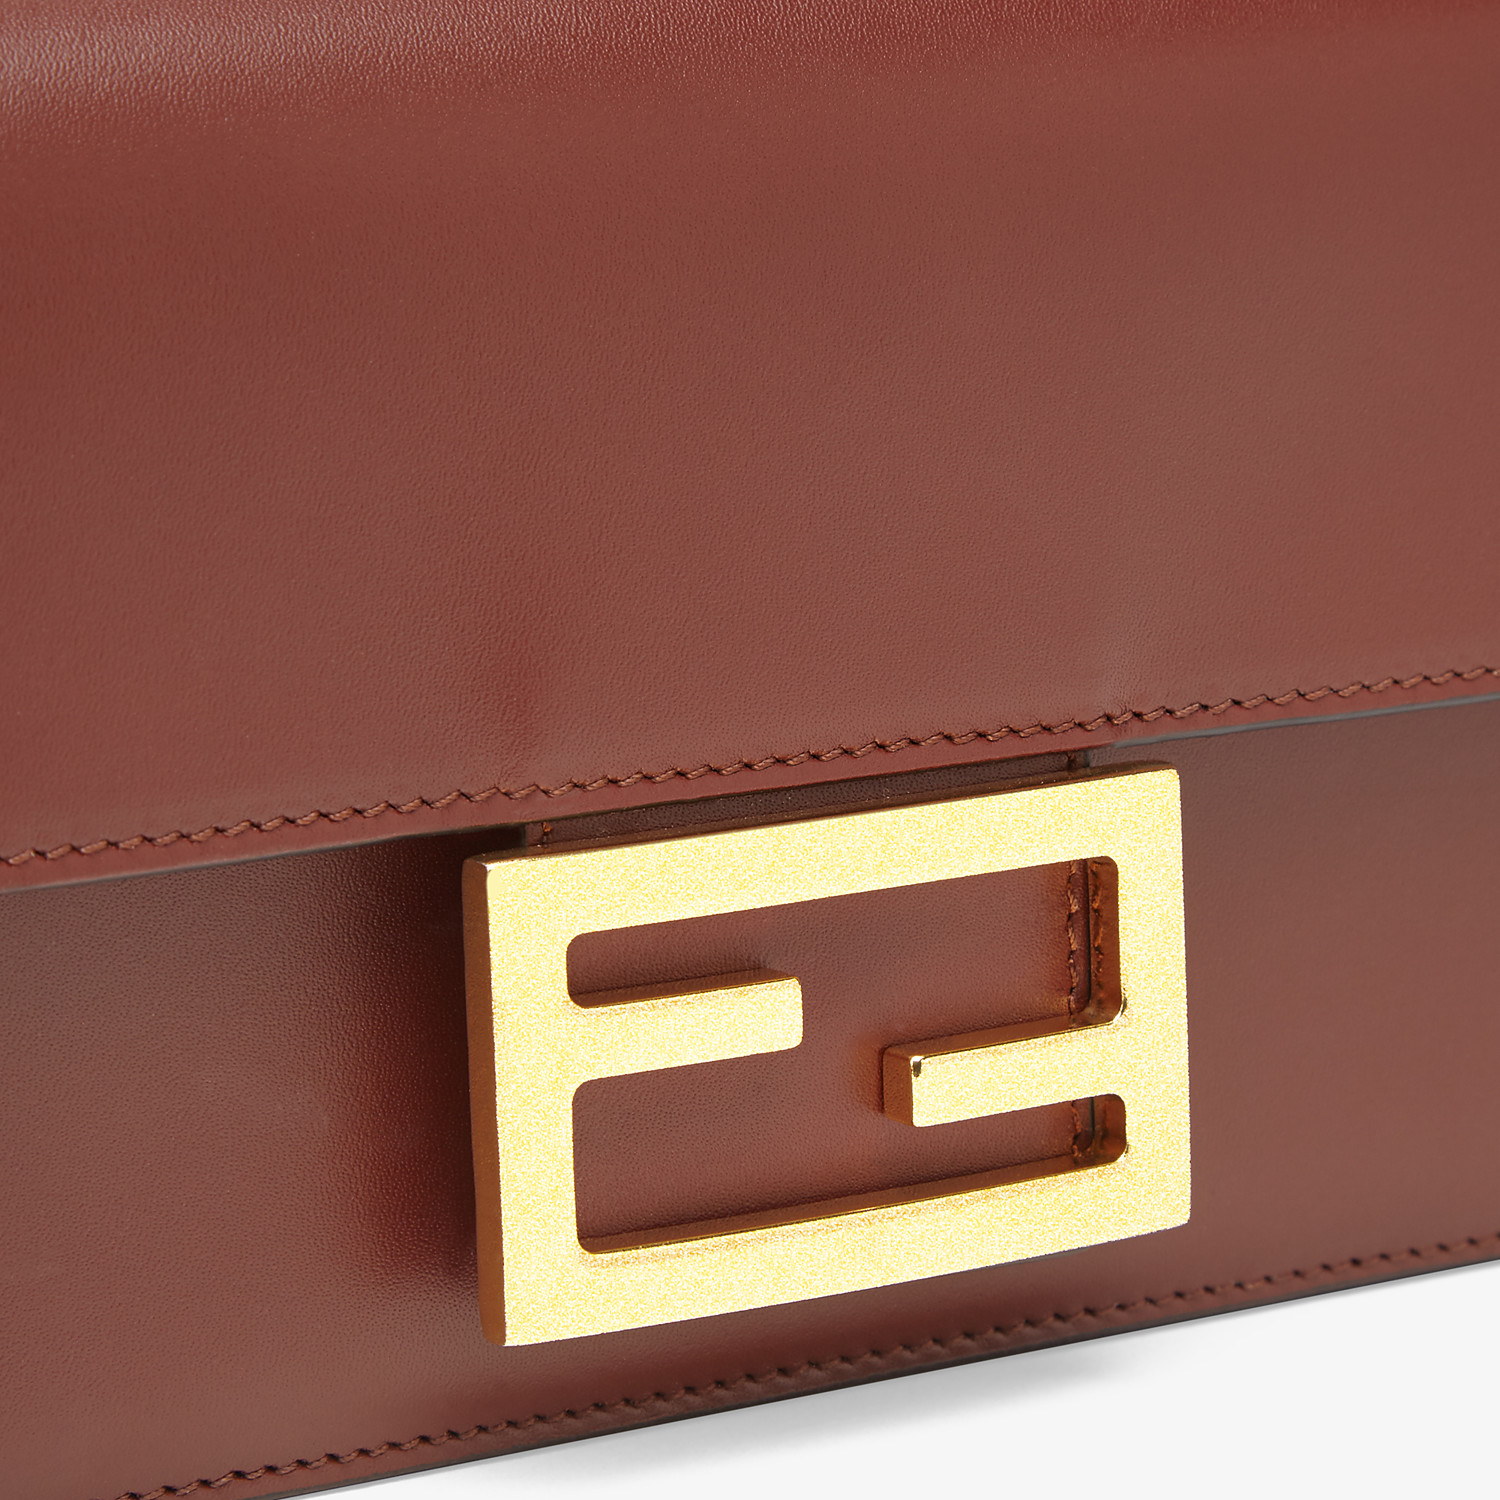 FENDI FLAT BAGUETTE - Brown leather mini-bag - view 6 detail